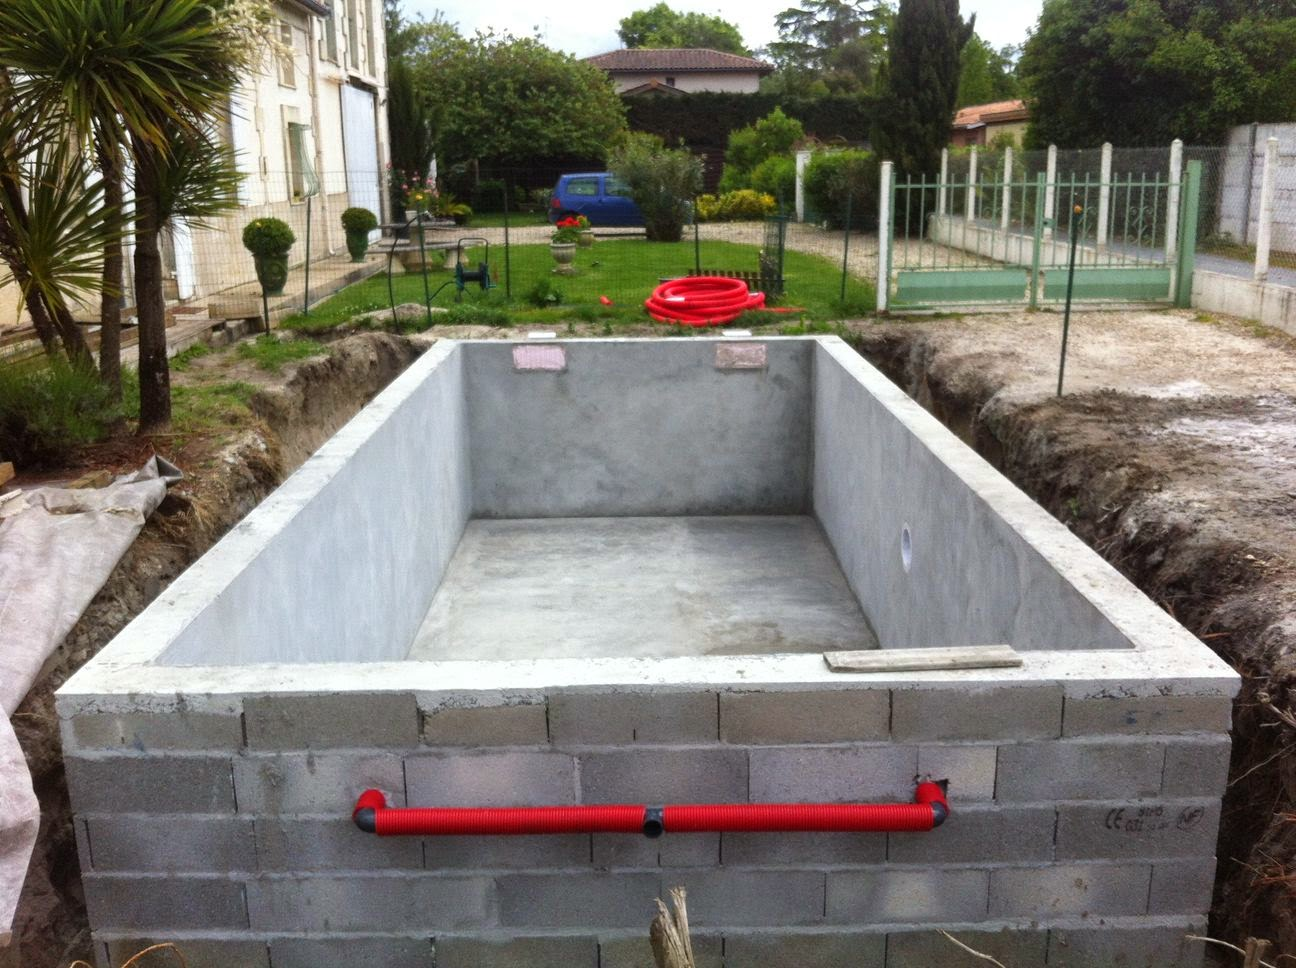 Projet tapes de construction d 39 une piscine en gironde for Auto construction piscine